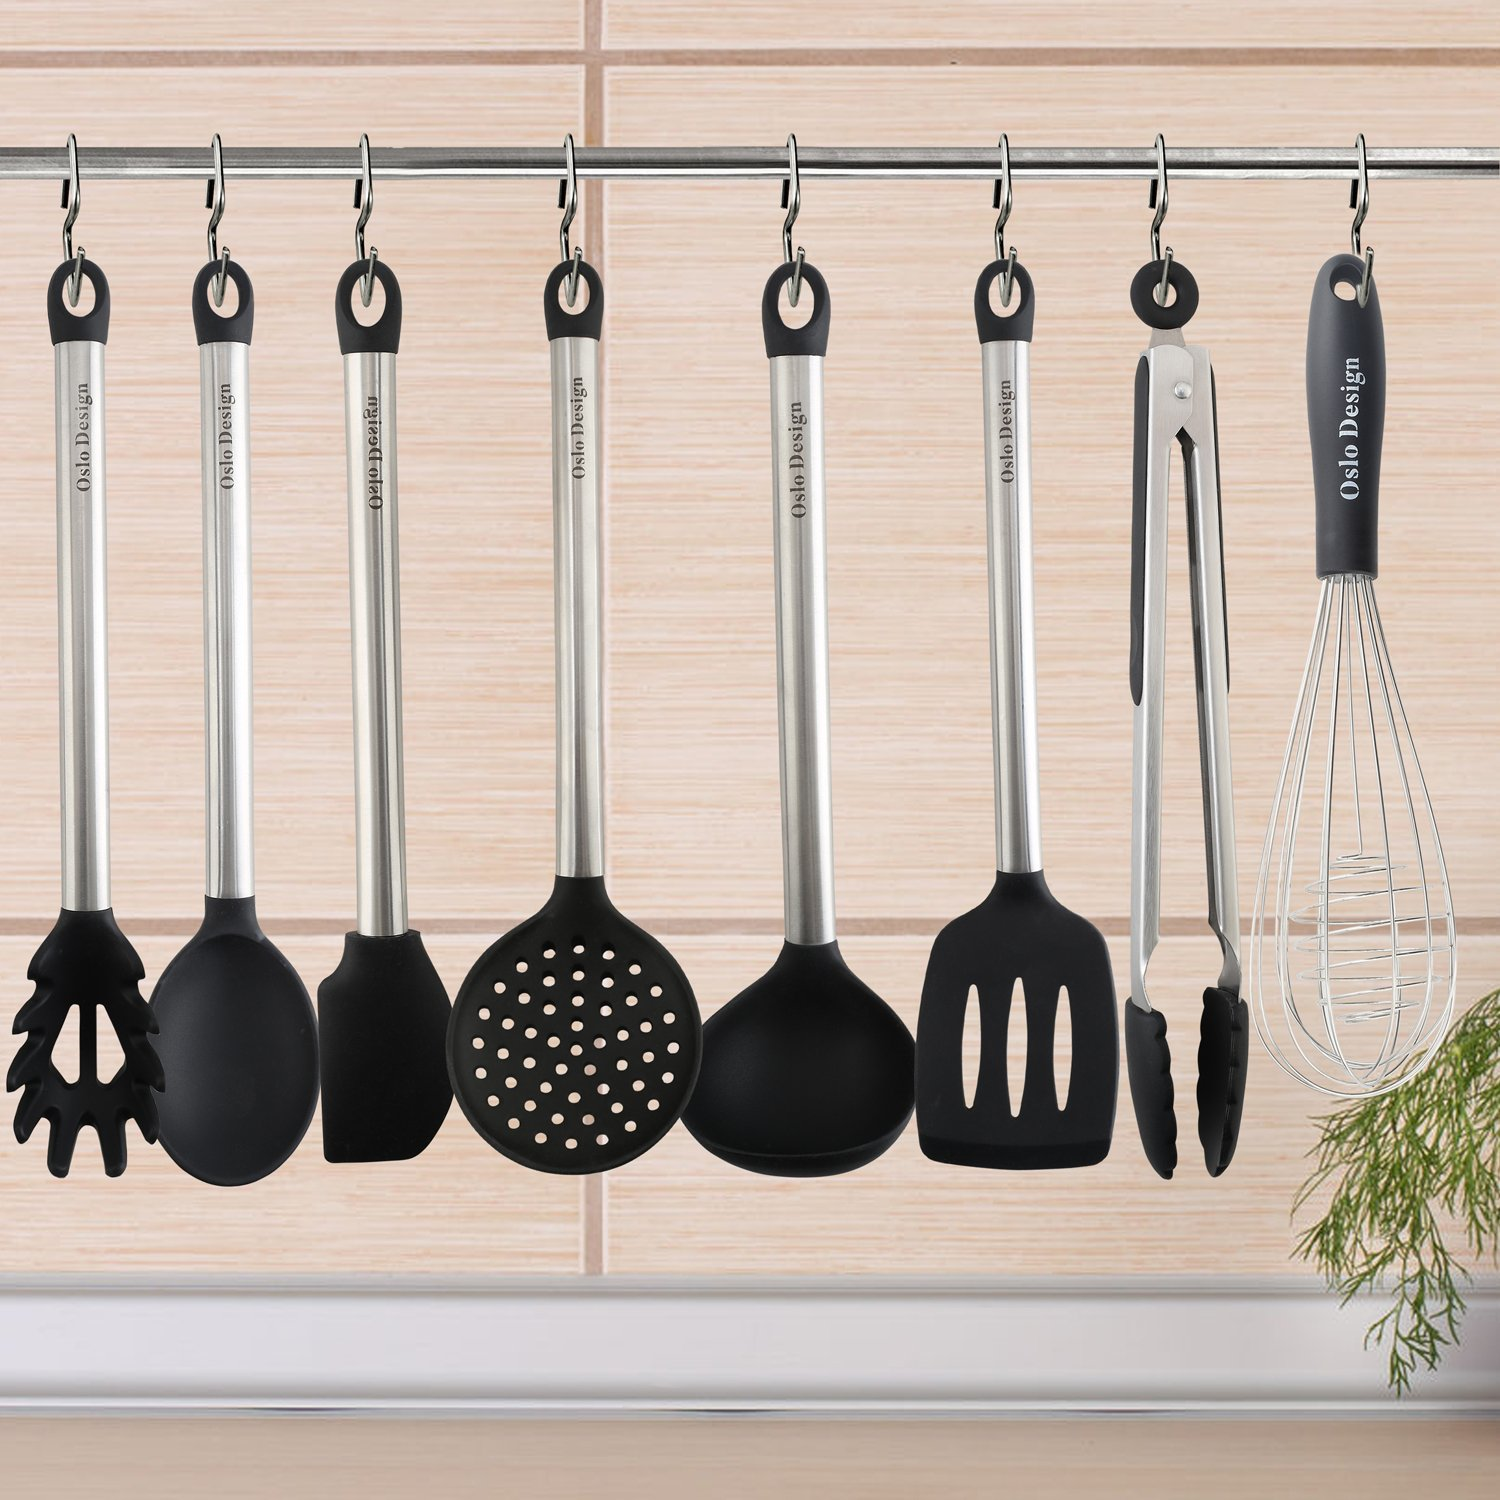 Kitchen Utensil set - 8 Piece Cooking Utensils for nonstick cookware -Made Of Silicone and Stainless Steel -Includes Spoon, Egg Whisk, Serving Tong, Spatula Tools, Pasta Server, Ladle, Strainer by Oslo Design (Image #6)